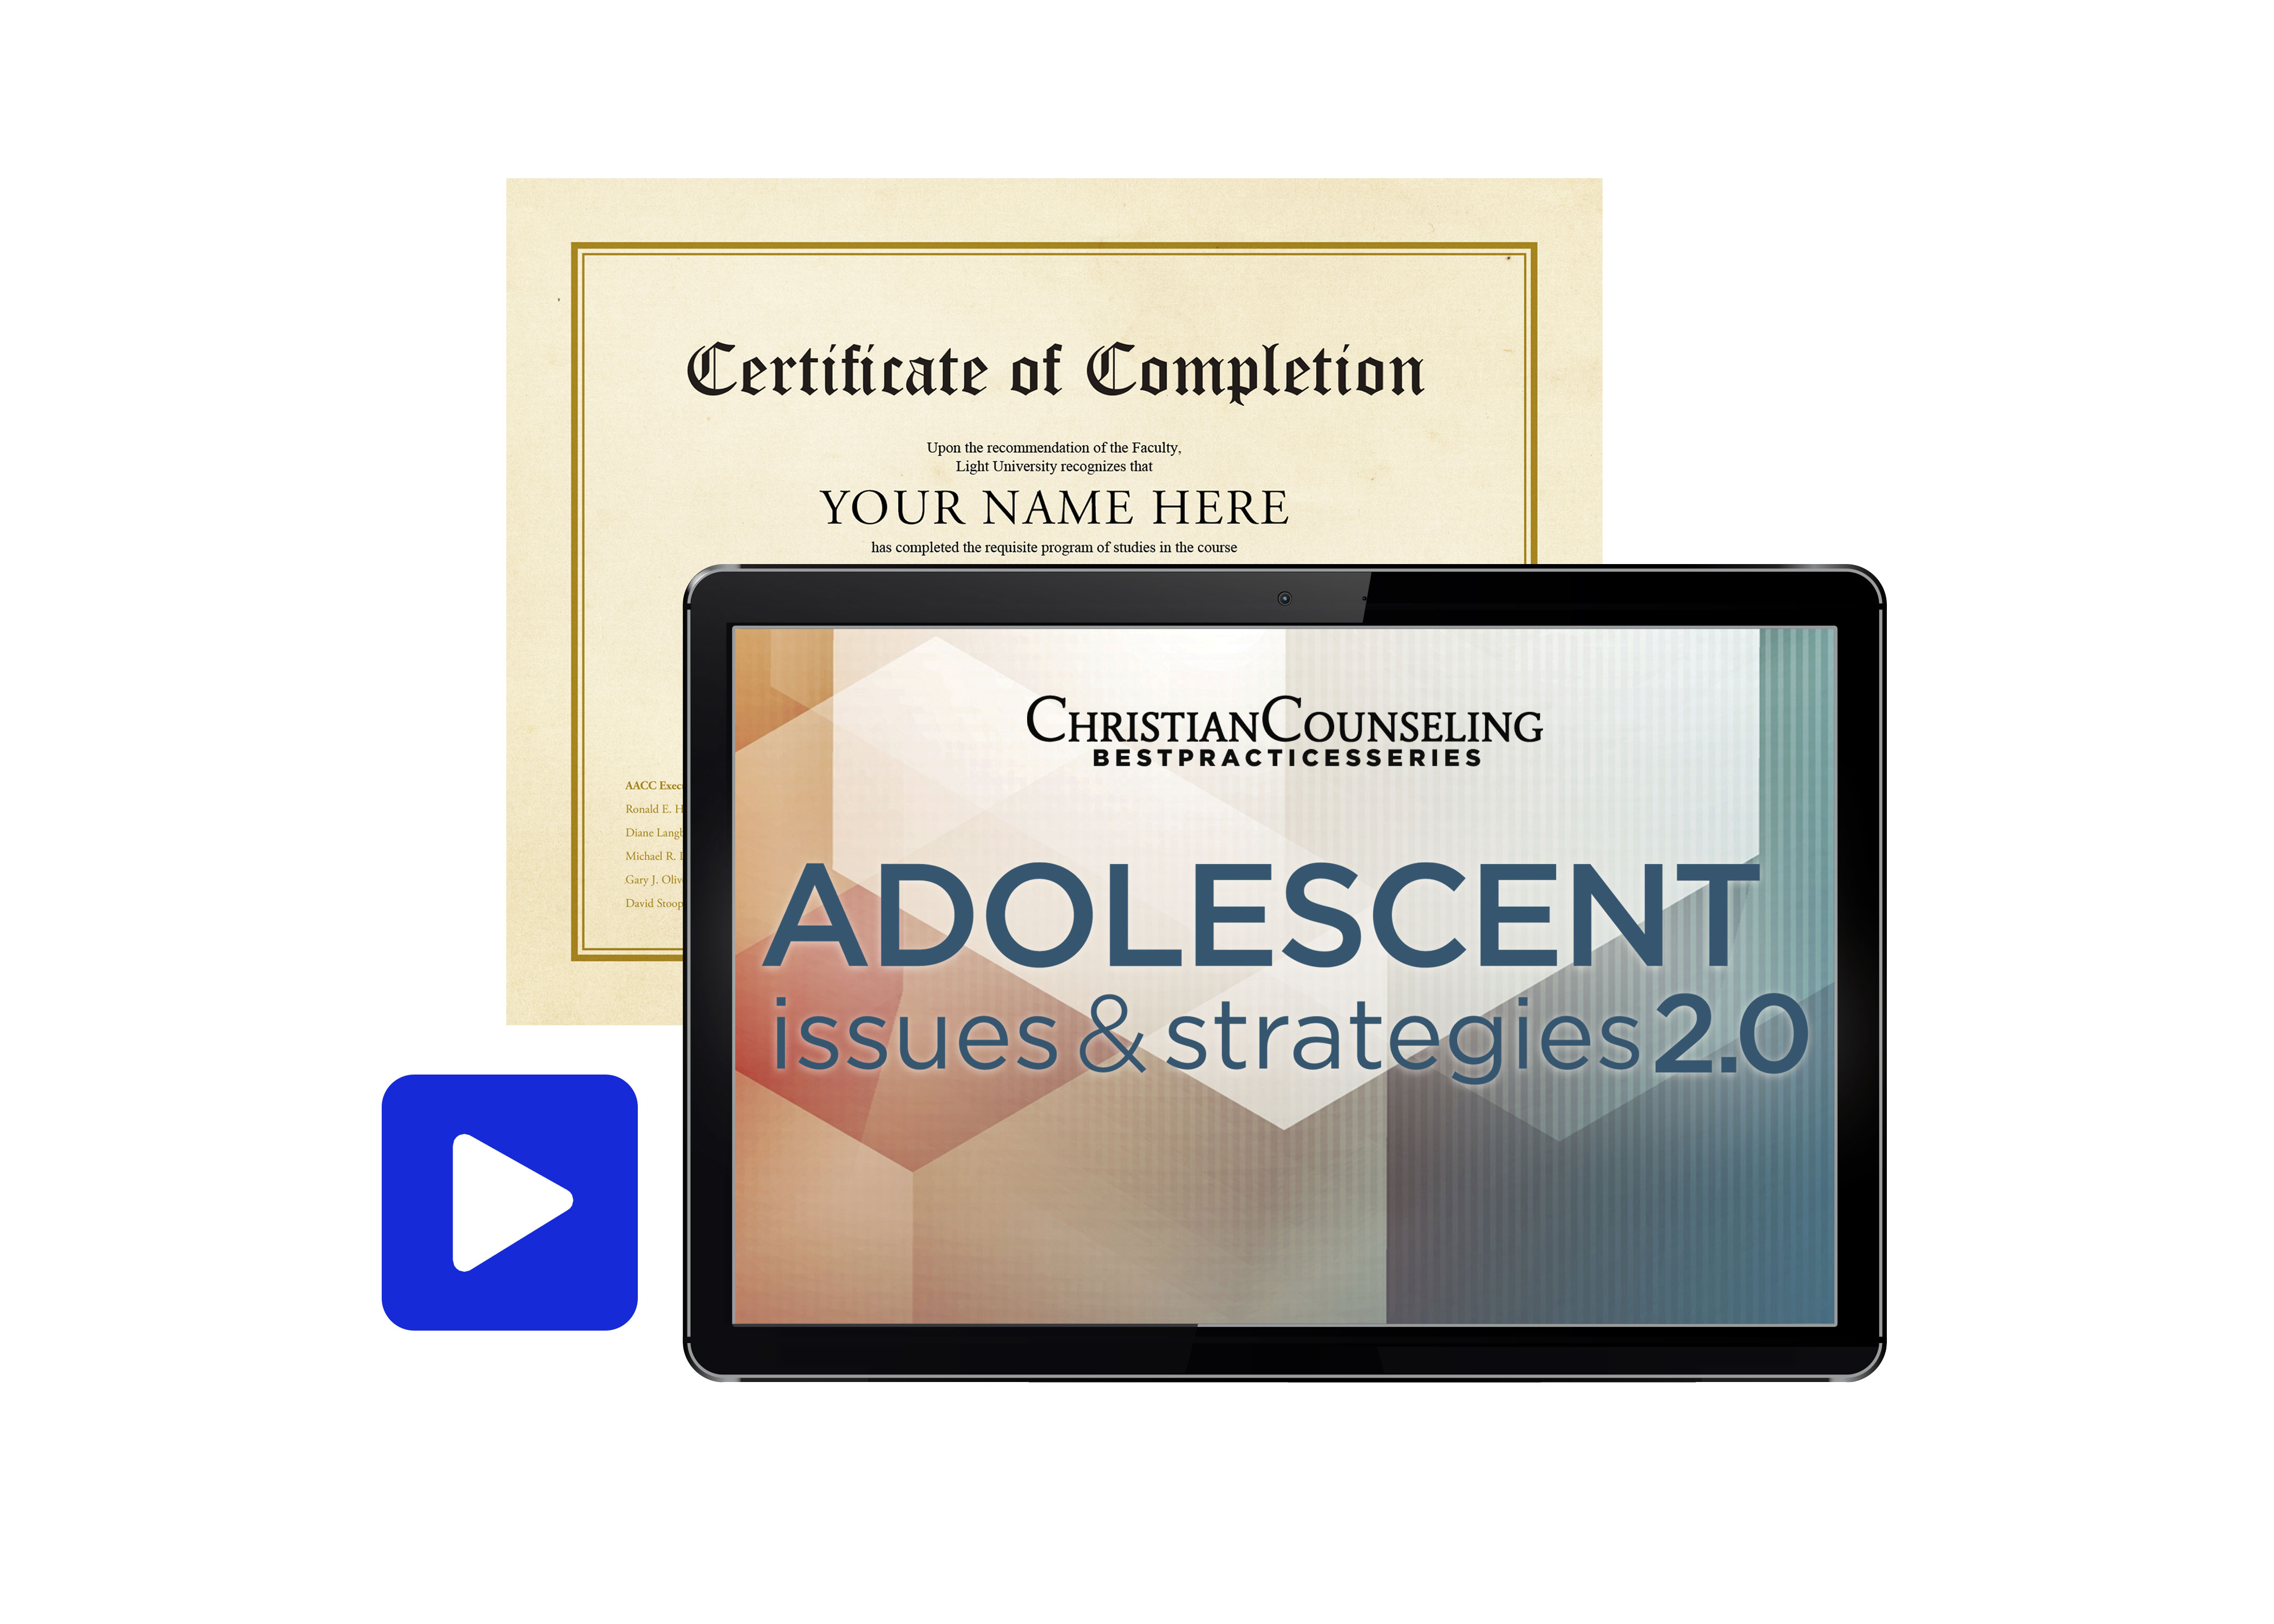 Adolescent Issues and Strategies 2.0